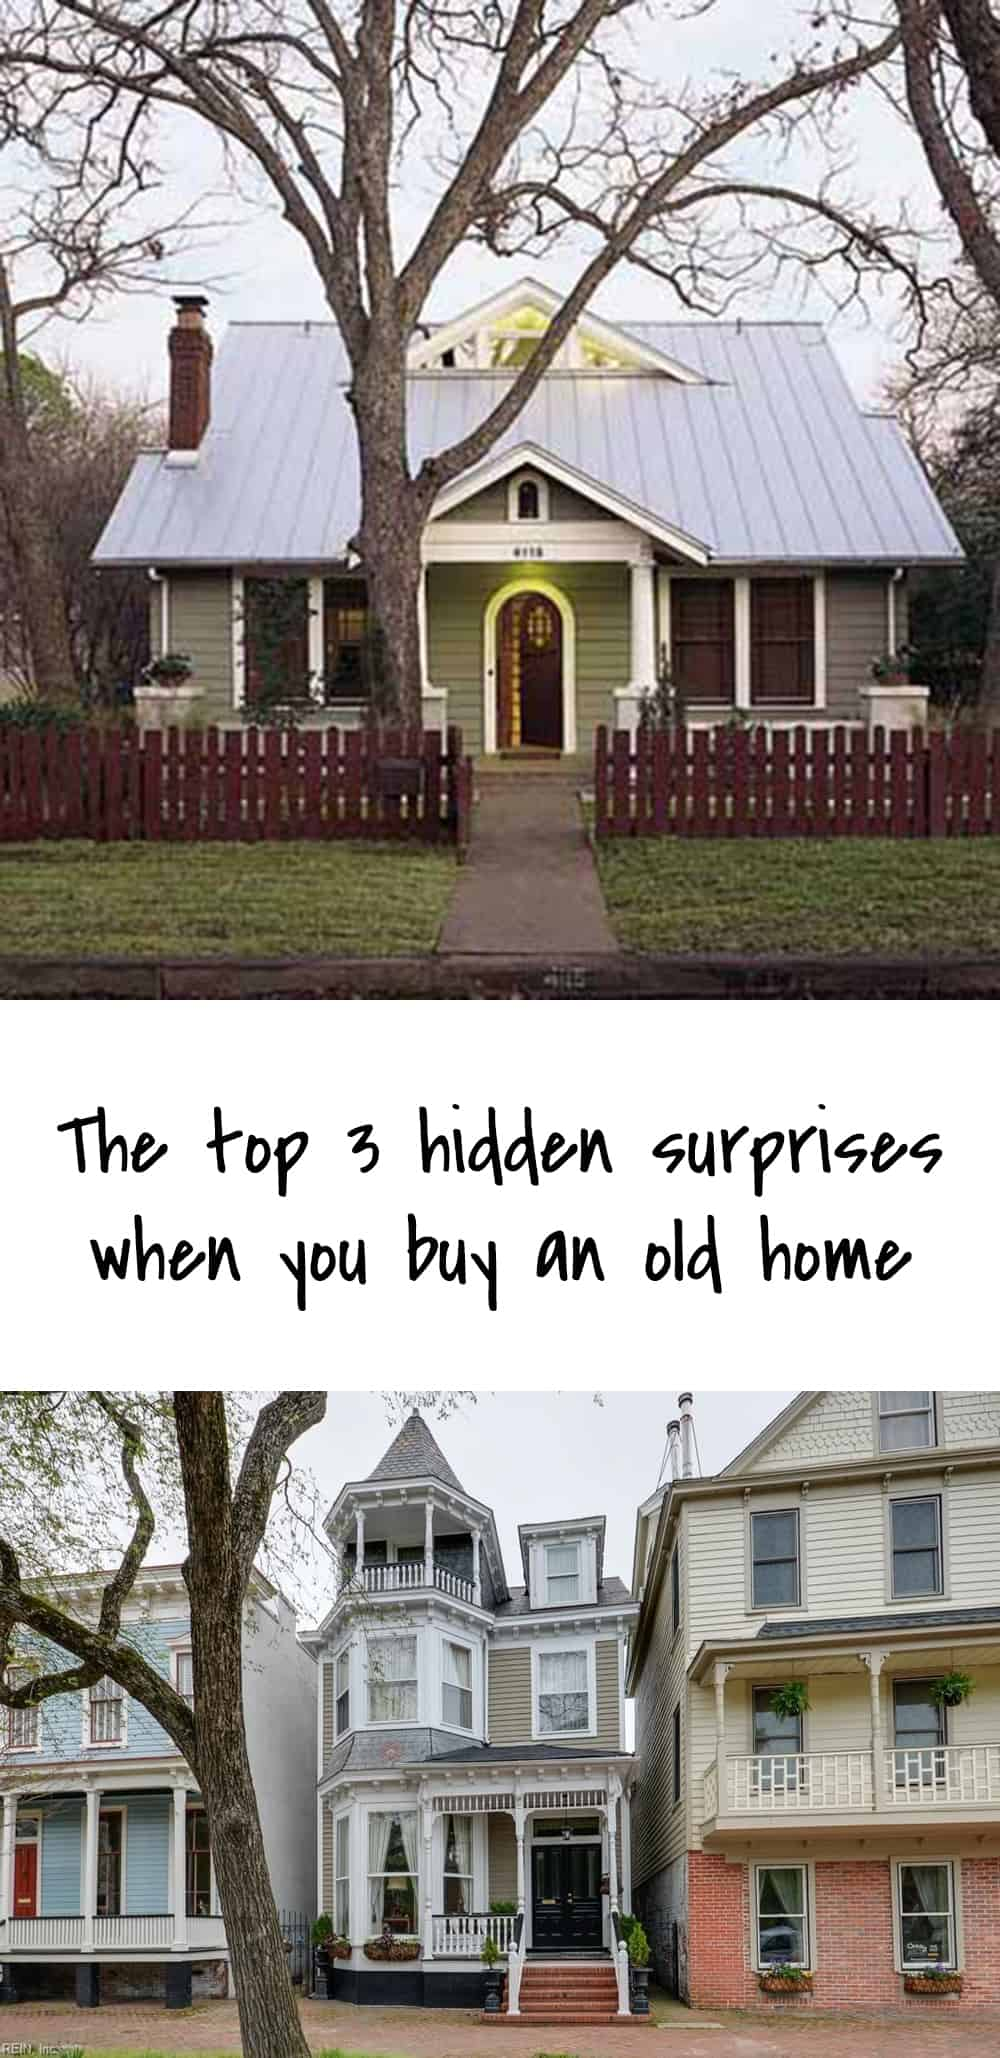 The top 3 hidden surprises when you buy an old home ohoh for Buying an old house